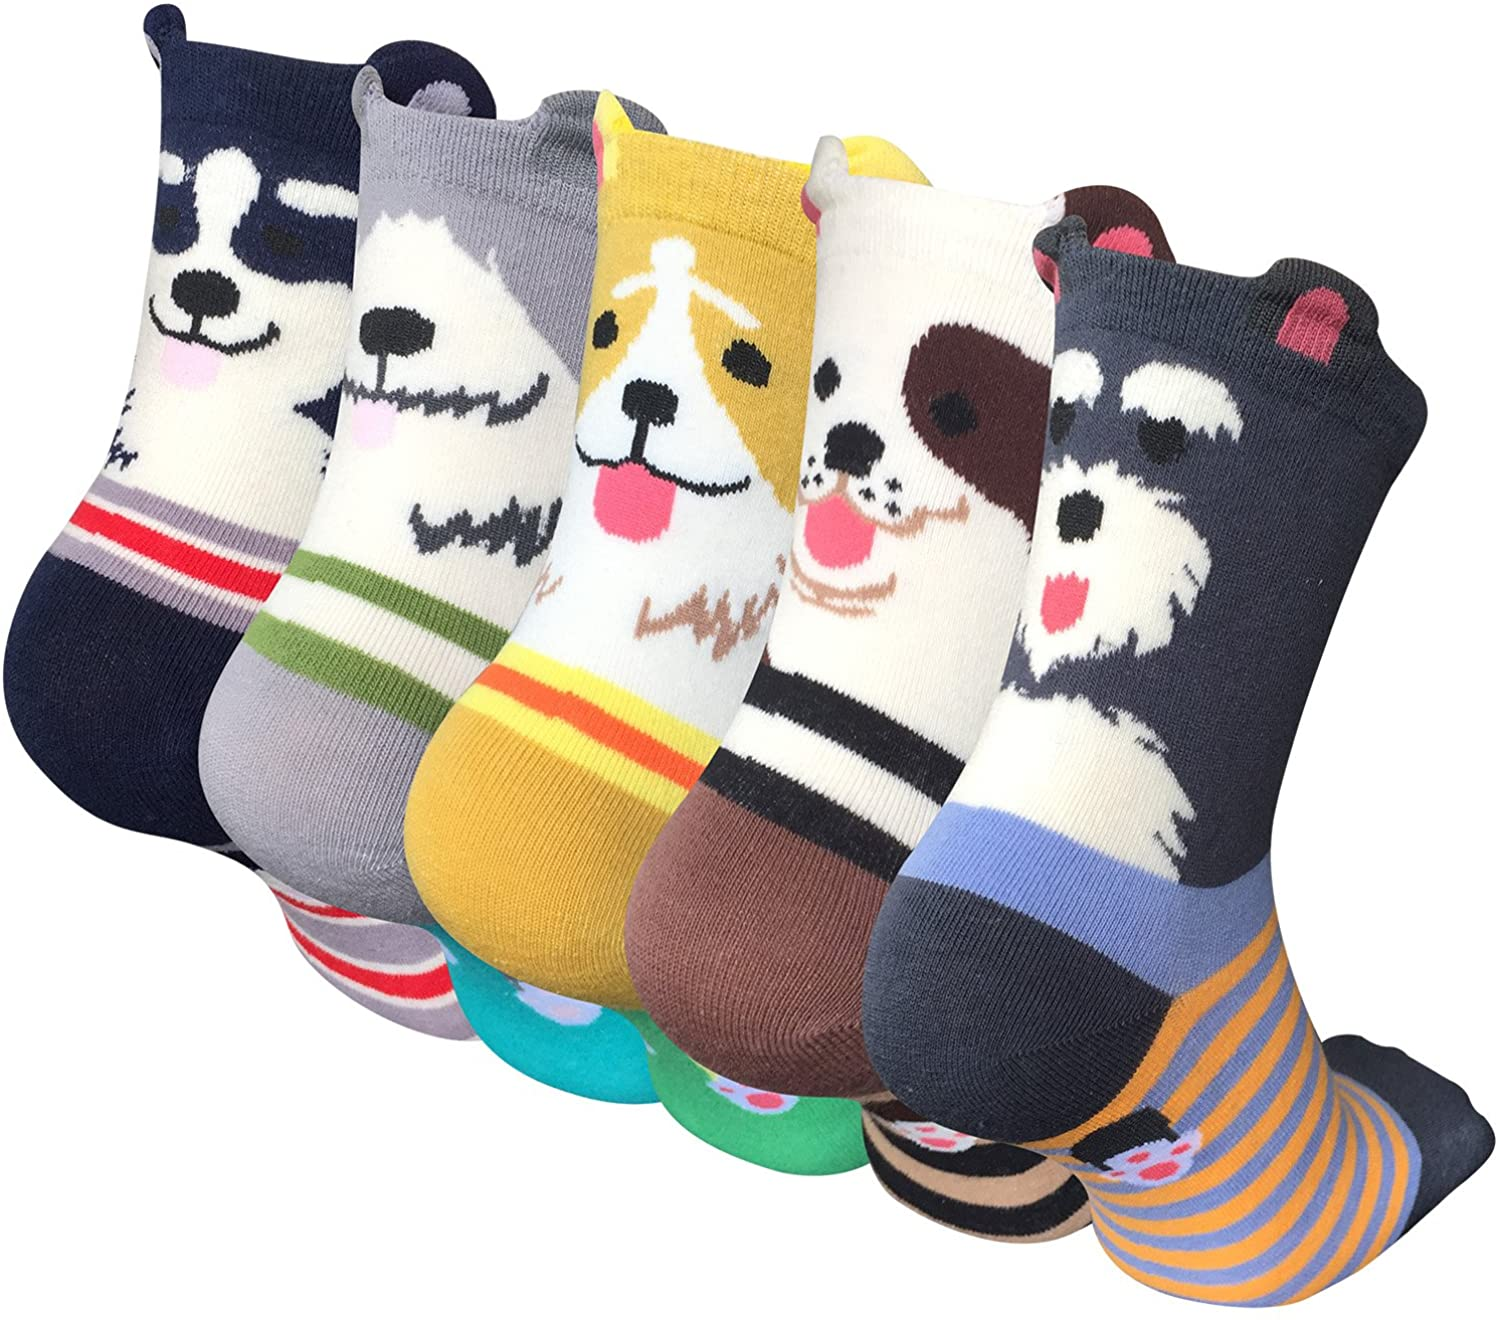 YSense Women's Cute Animal Socks